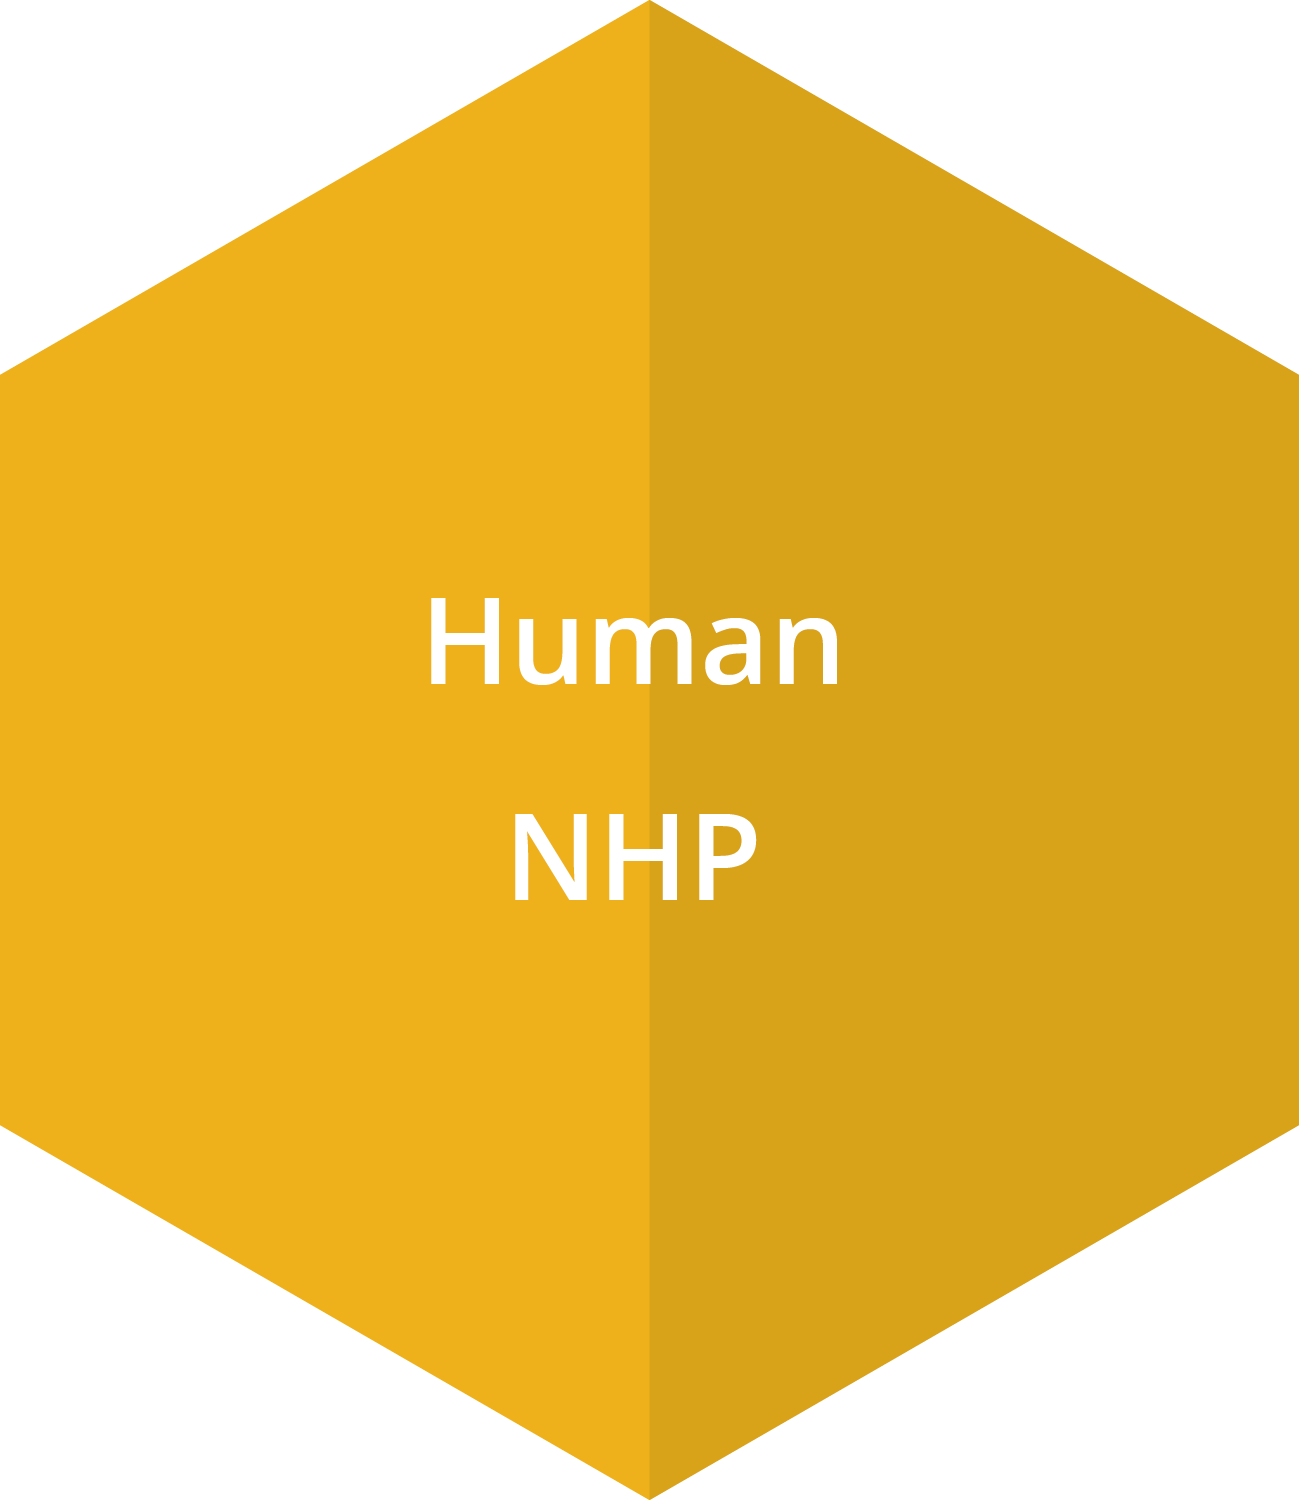 Human and non-human primate samples